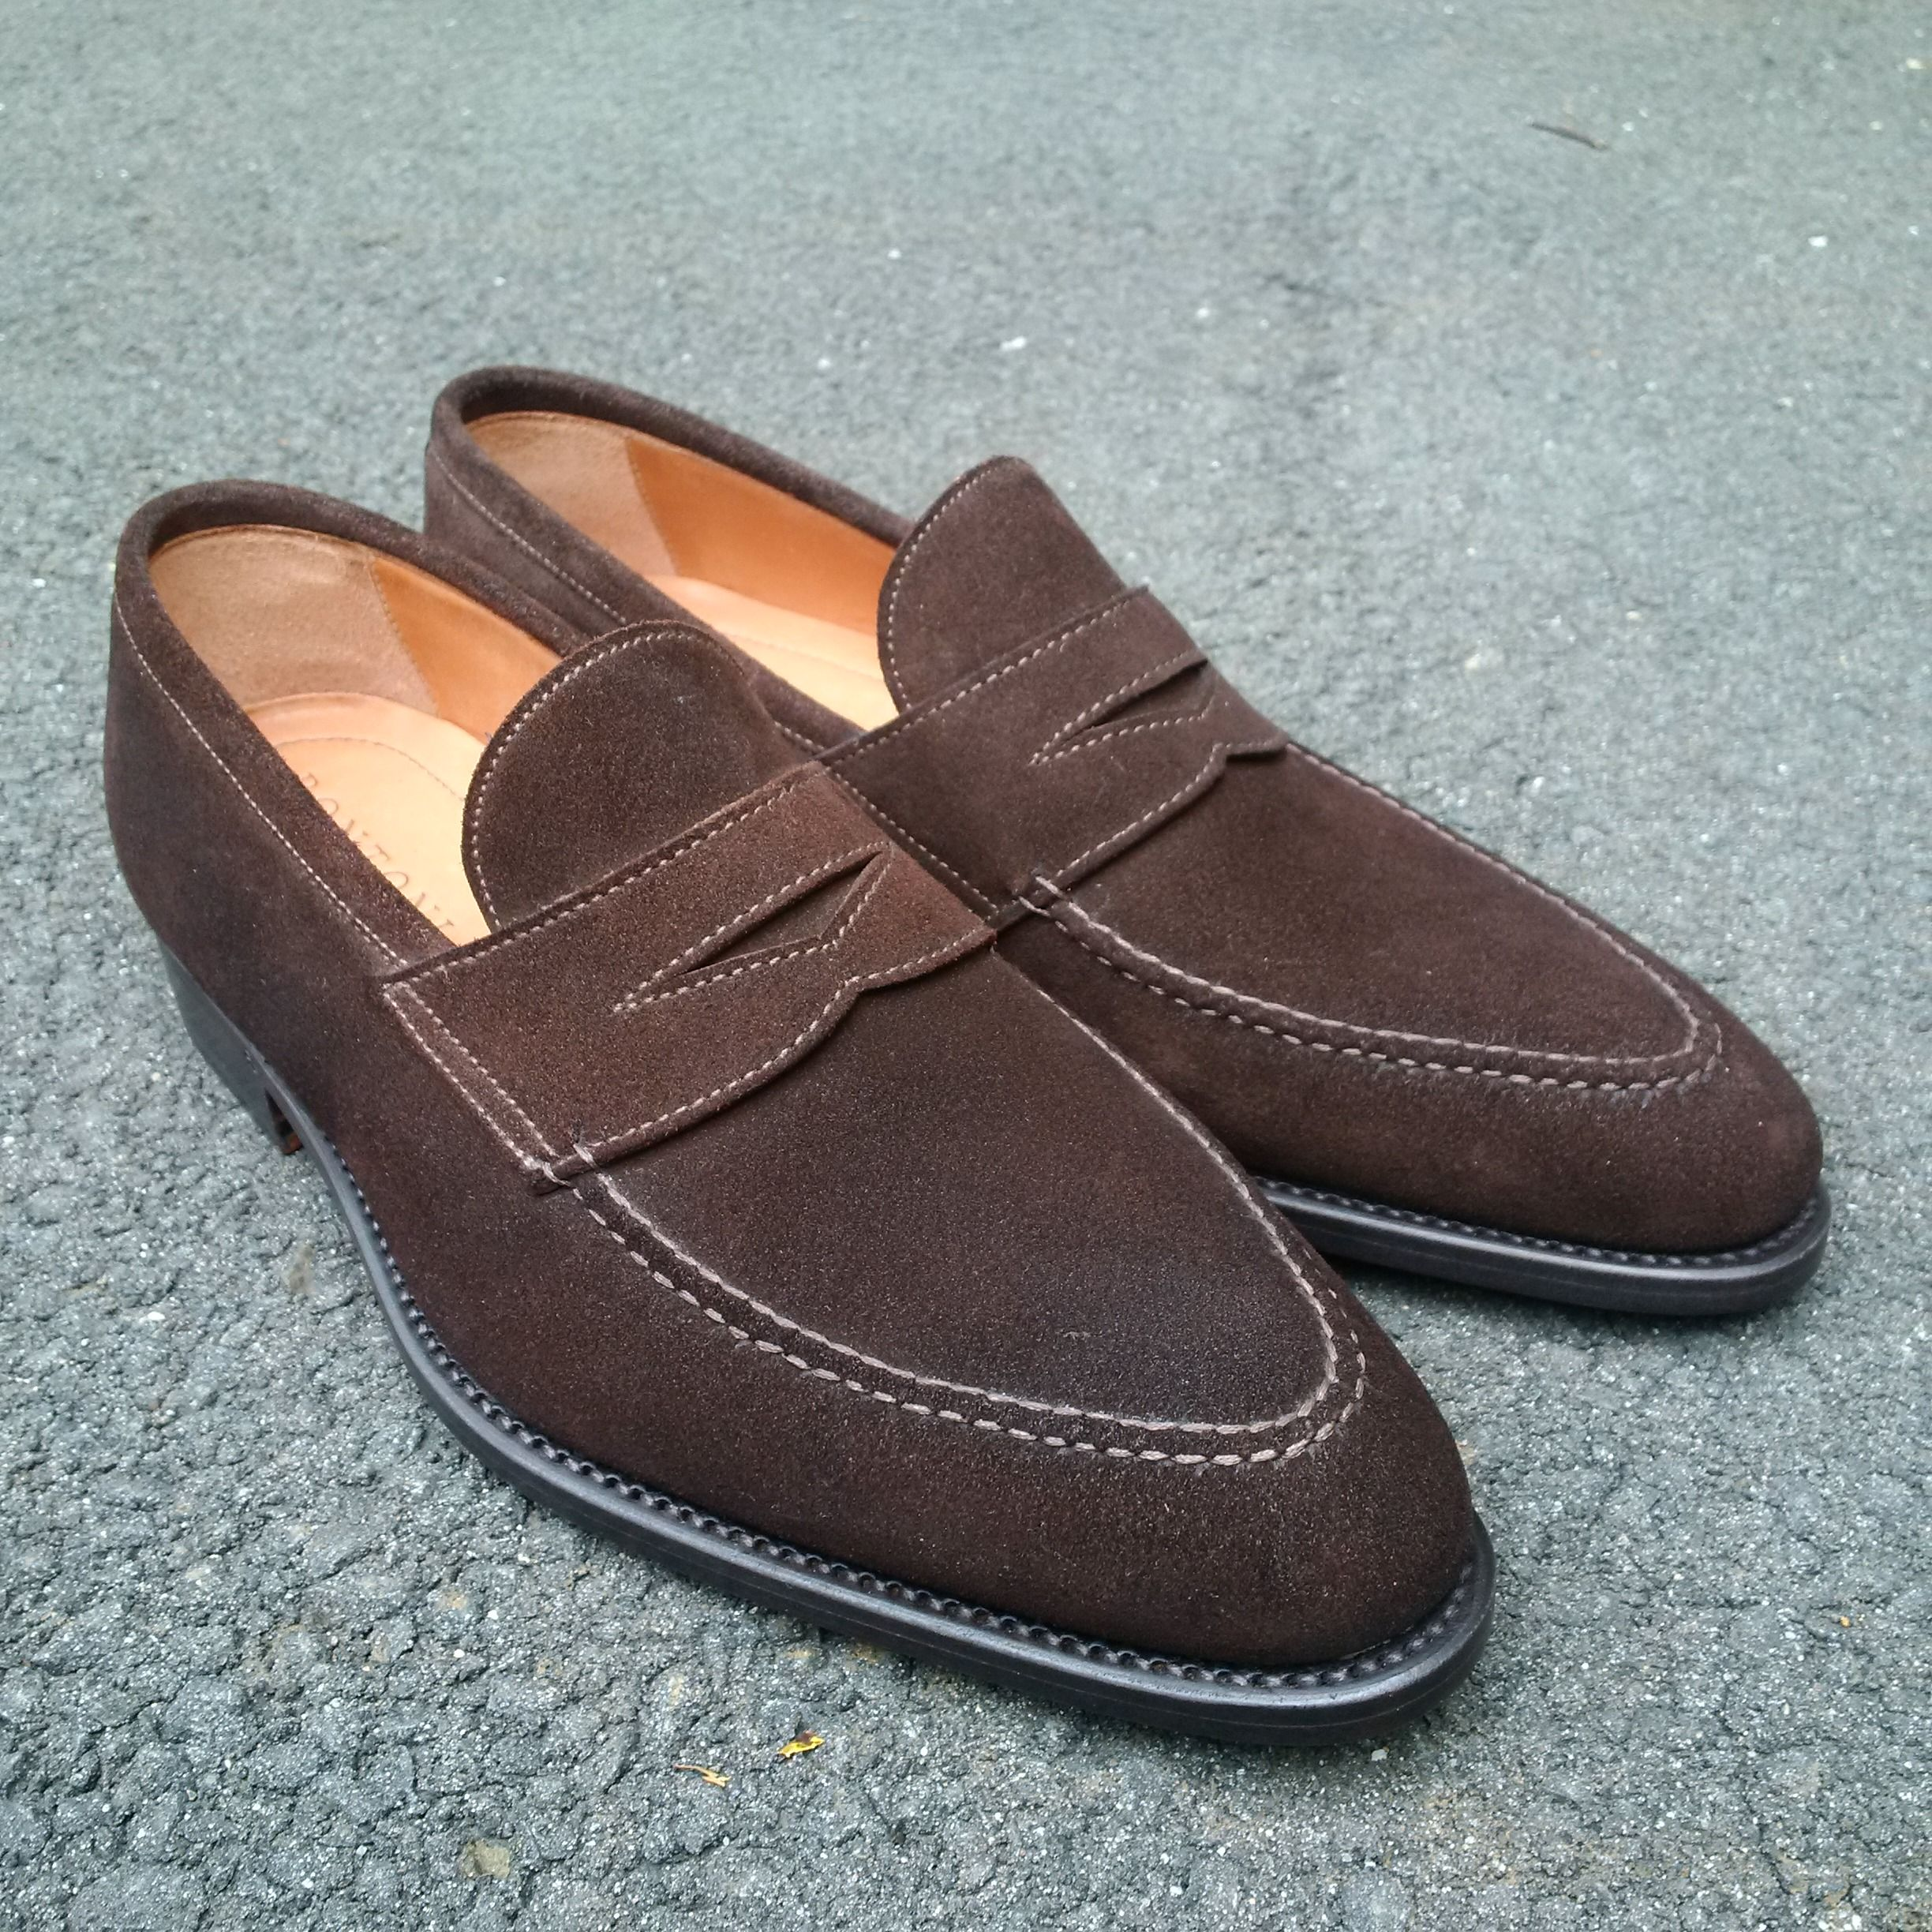 Bontoni suede loafers - perfect for the fall...